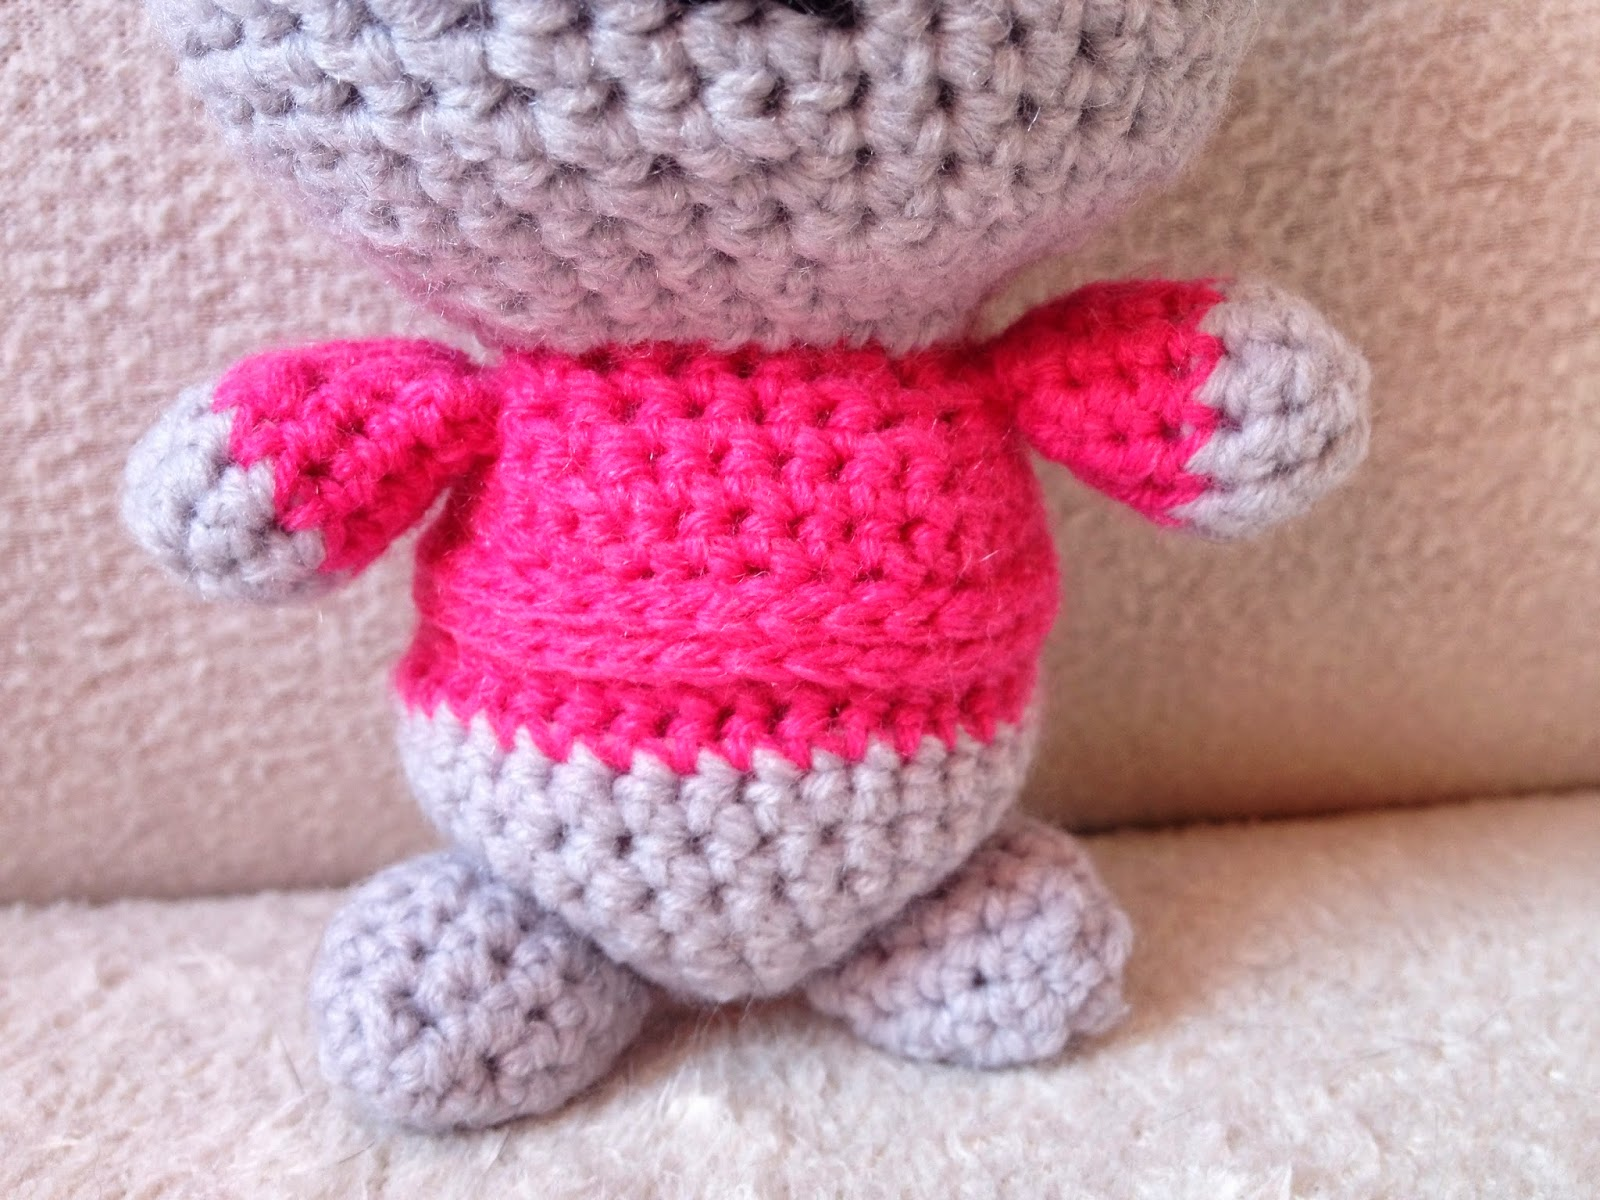 The Perfect Hiding Place - A Crochet Bunny #CrochetPal #Crochet